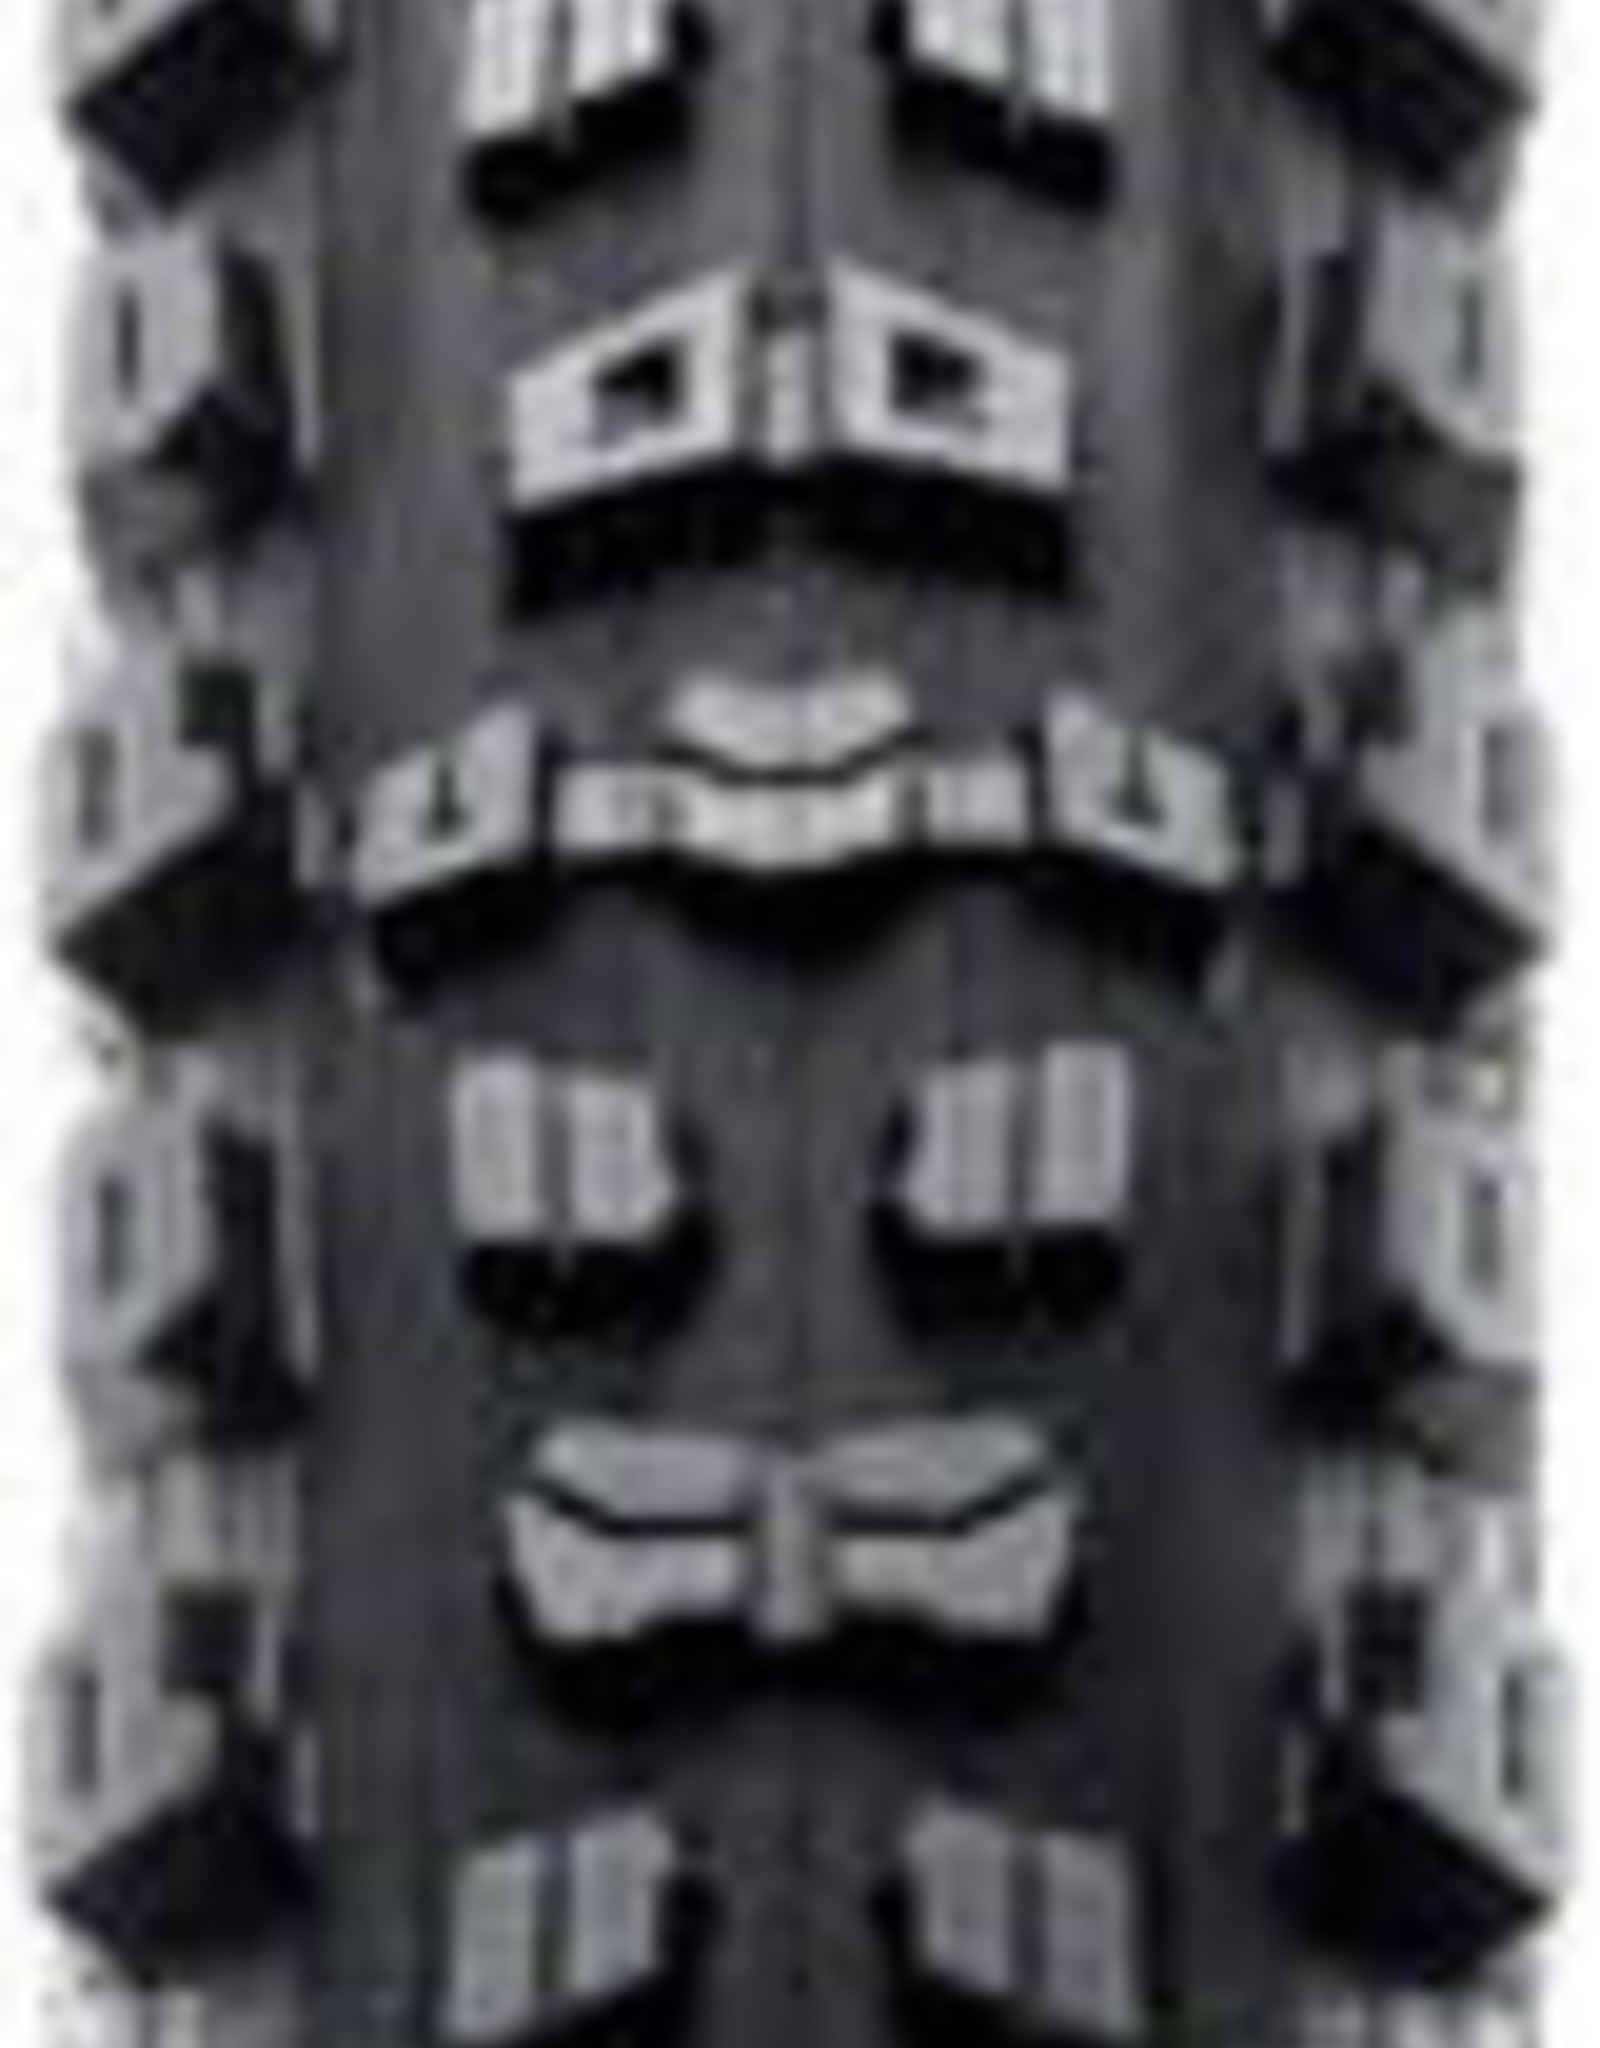 Maxxis Maxxis Aggressor Tire 27.5 x 2.50, Folding, 120tpi, Dual Compound, Double Down, Tubeless Ready, Wide Trail, Black